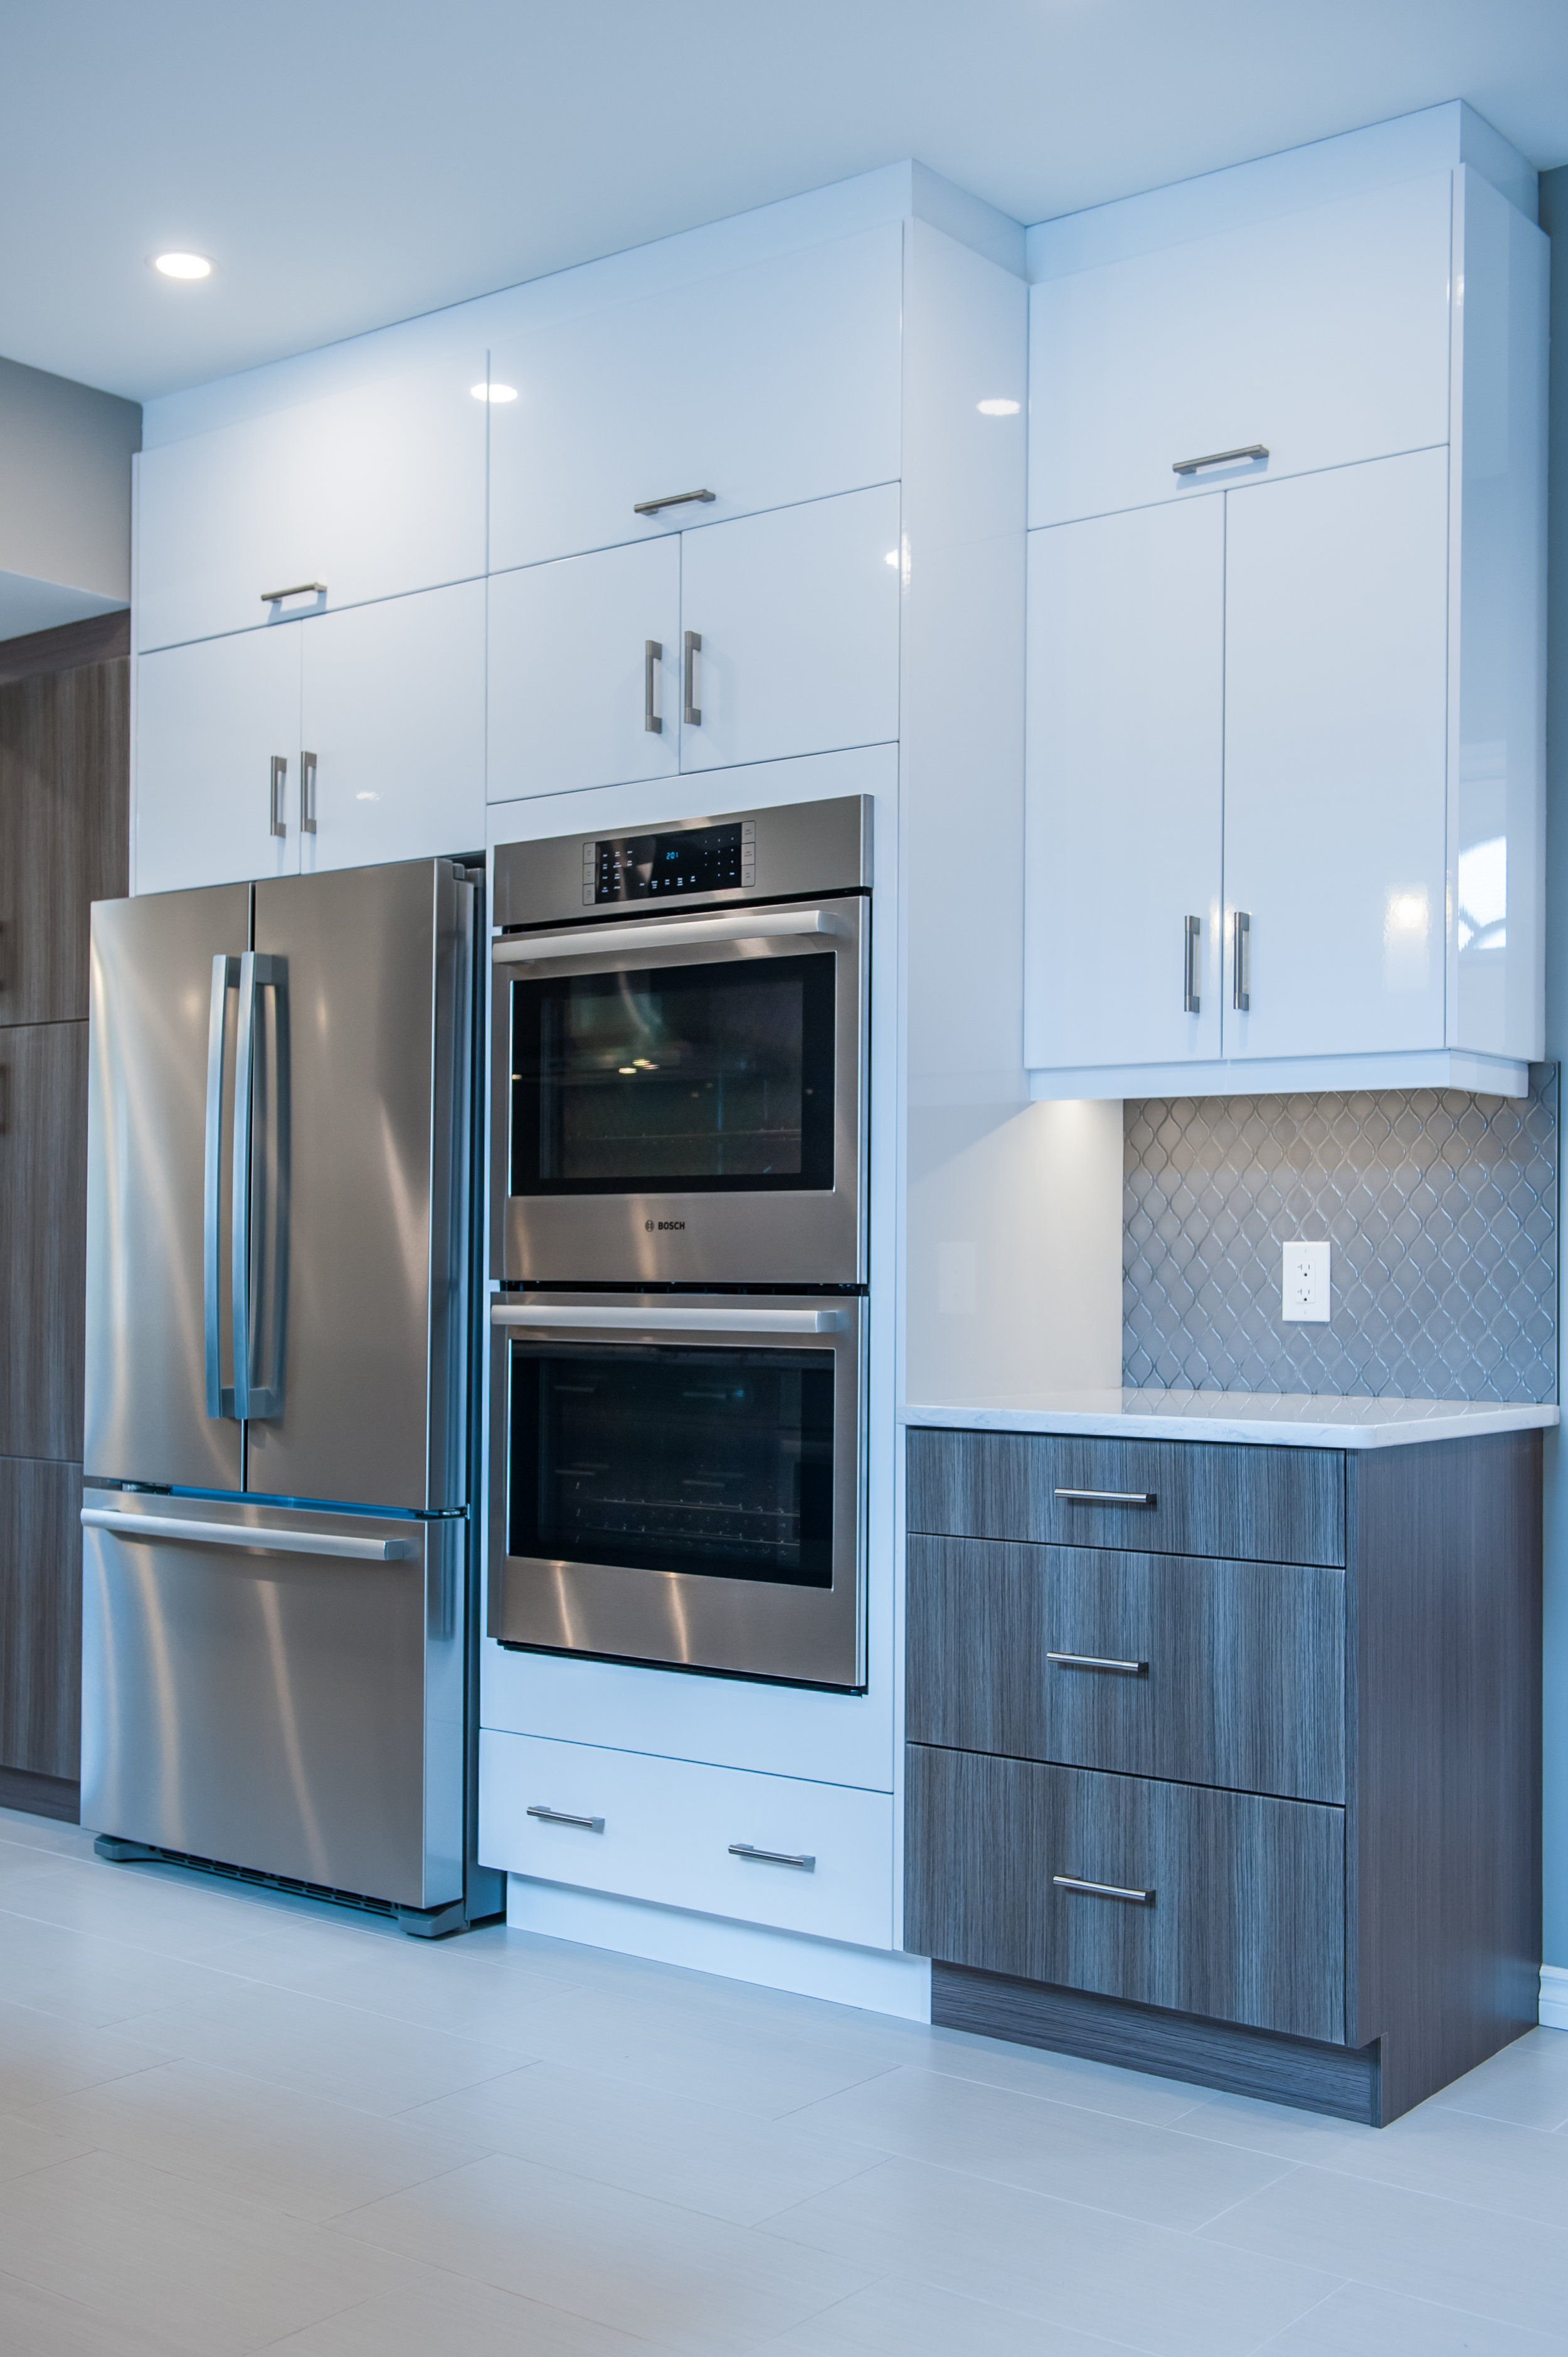 kitchen_condo_downtown_home_space_modern_grey_white_wood